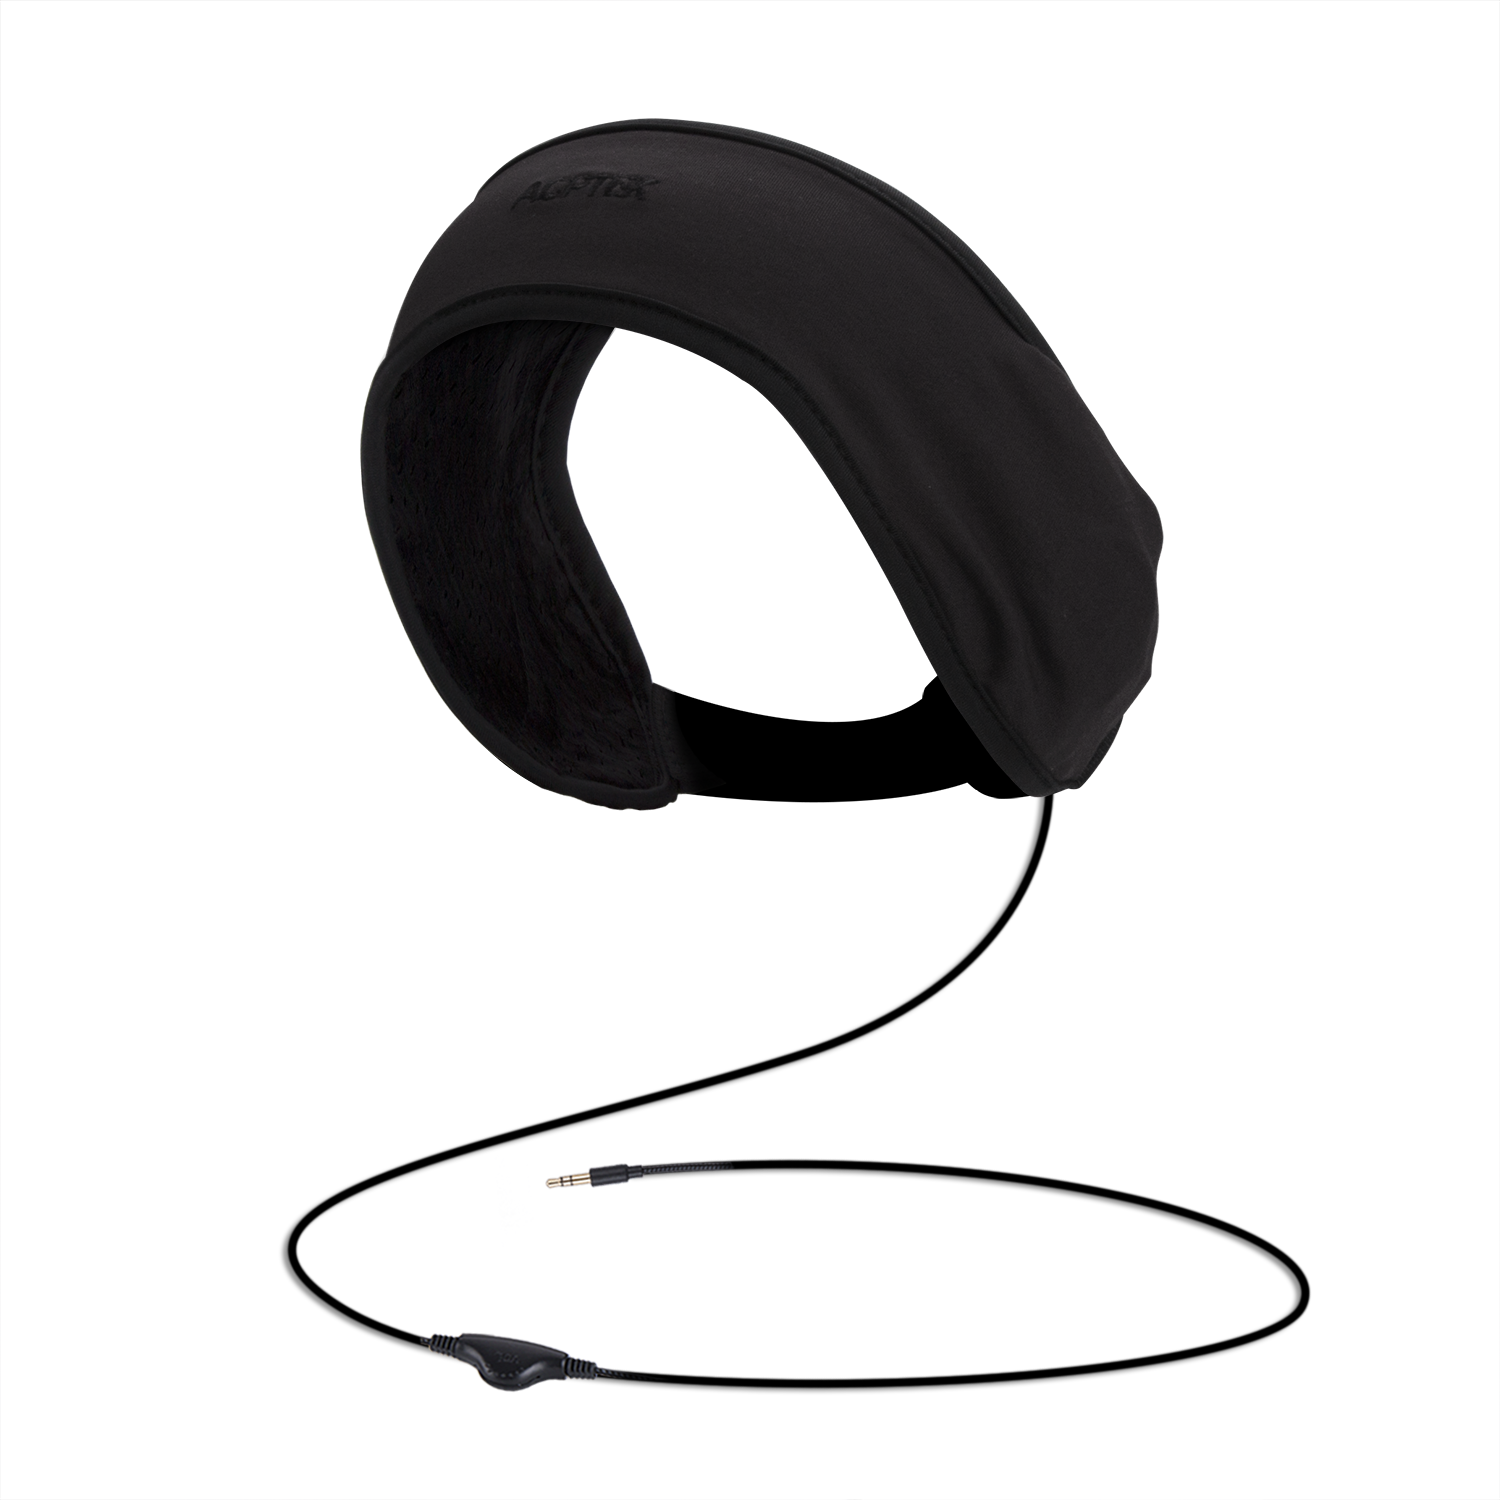 AGPTEK Sleep Headphones Soft Lycra Mesh Lining with Volume Control and Bag for Sleeping, Sports, Air Travel, Snoring, Insomnia, Meditation & Relaxation, Black